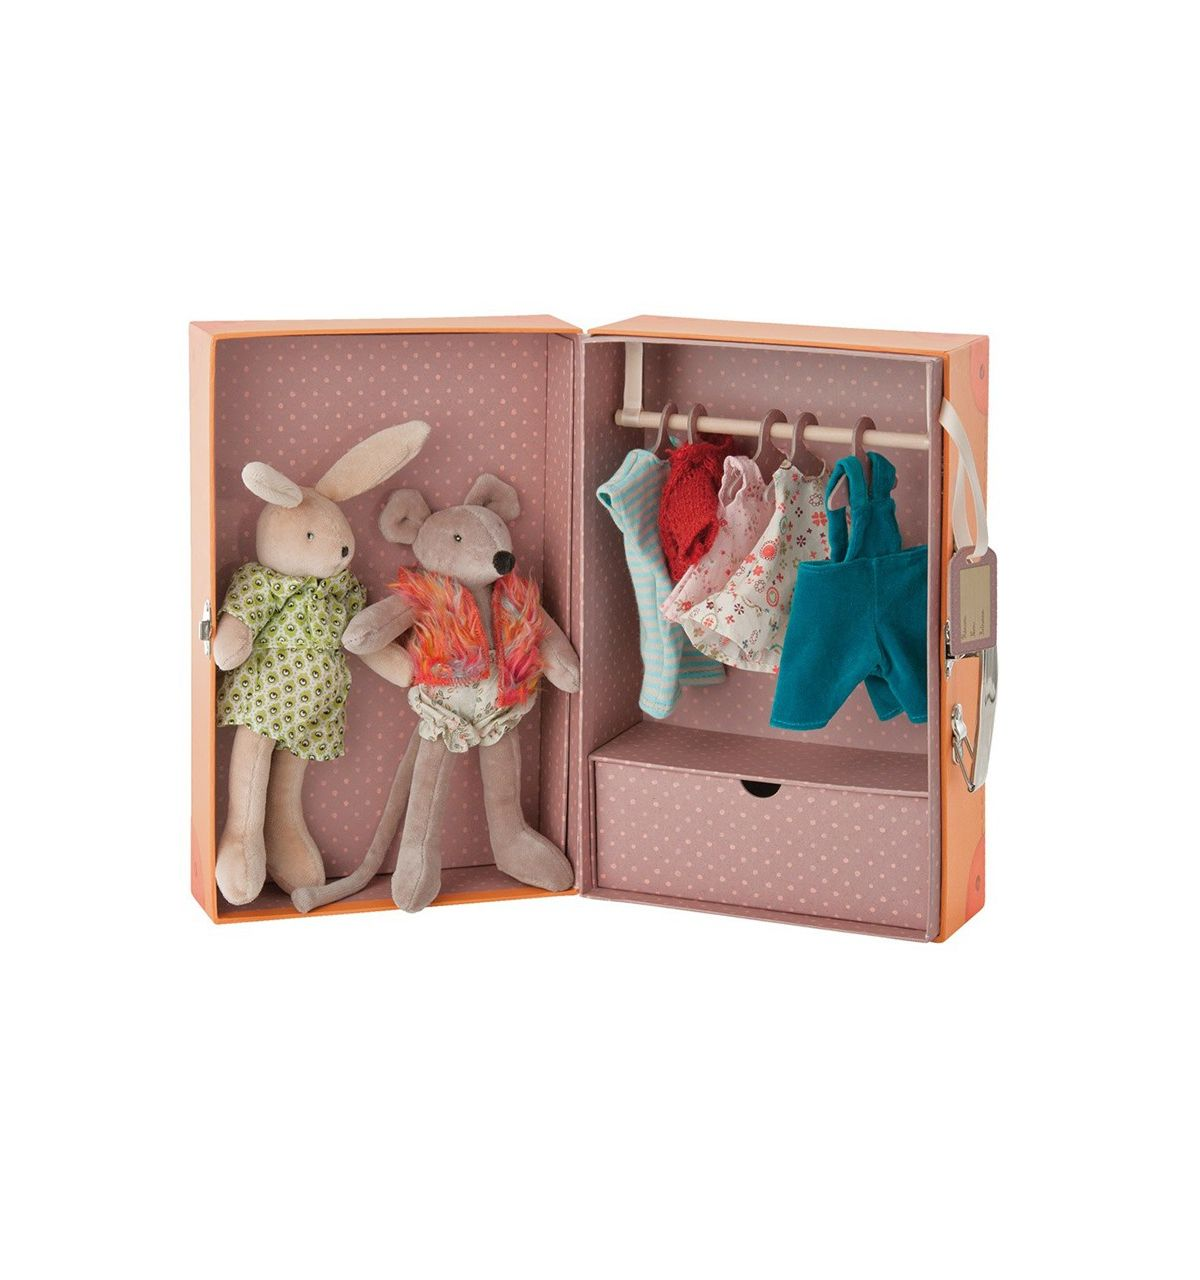 moulin roty wardrobe suitcase with soft toys le petit armoire. Black Bedroom Furniture Sets. Home Design Ideas